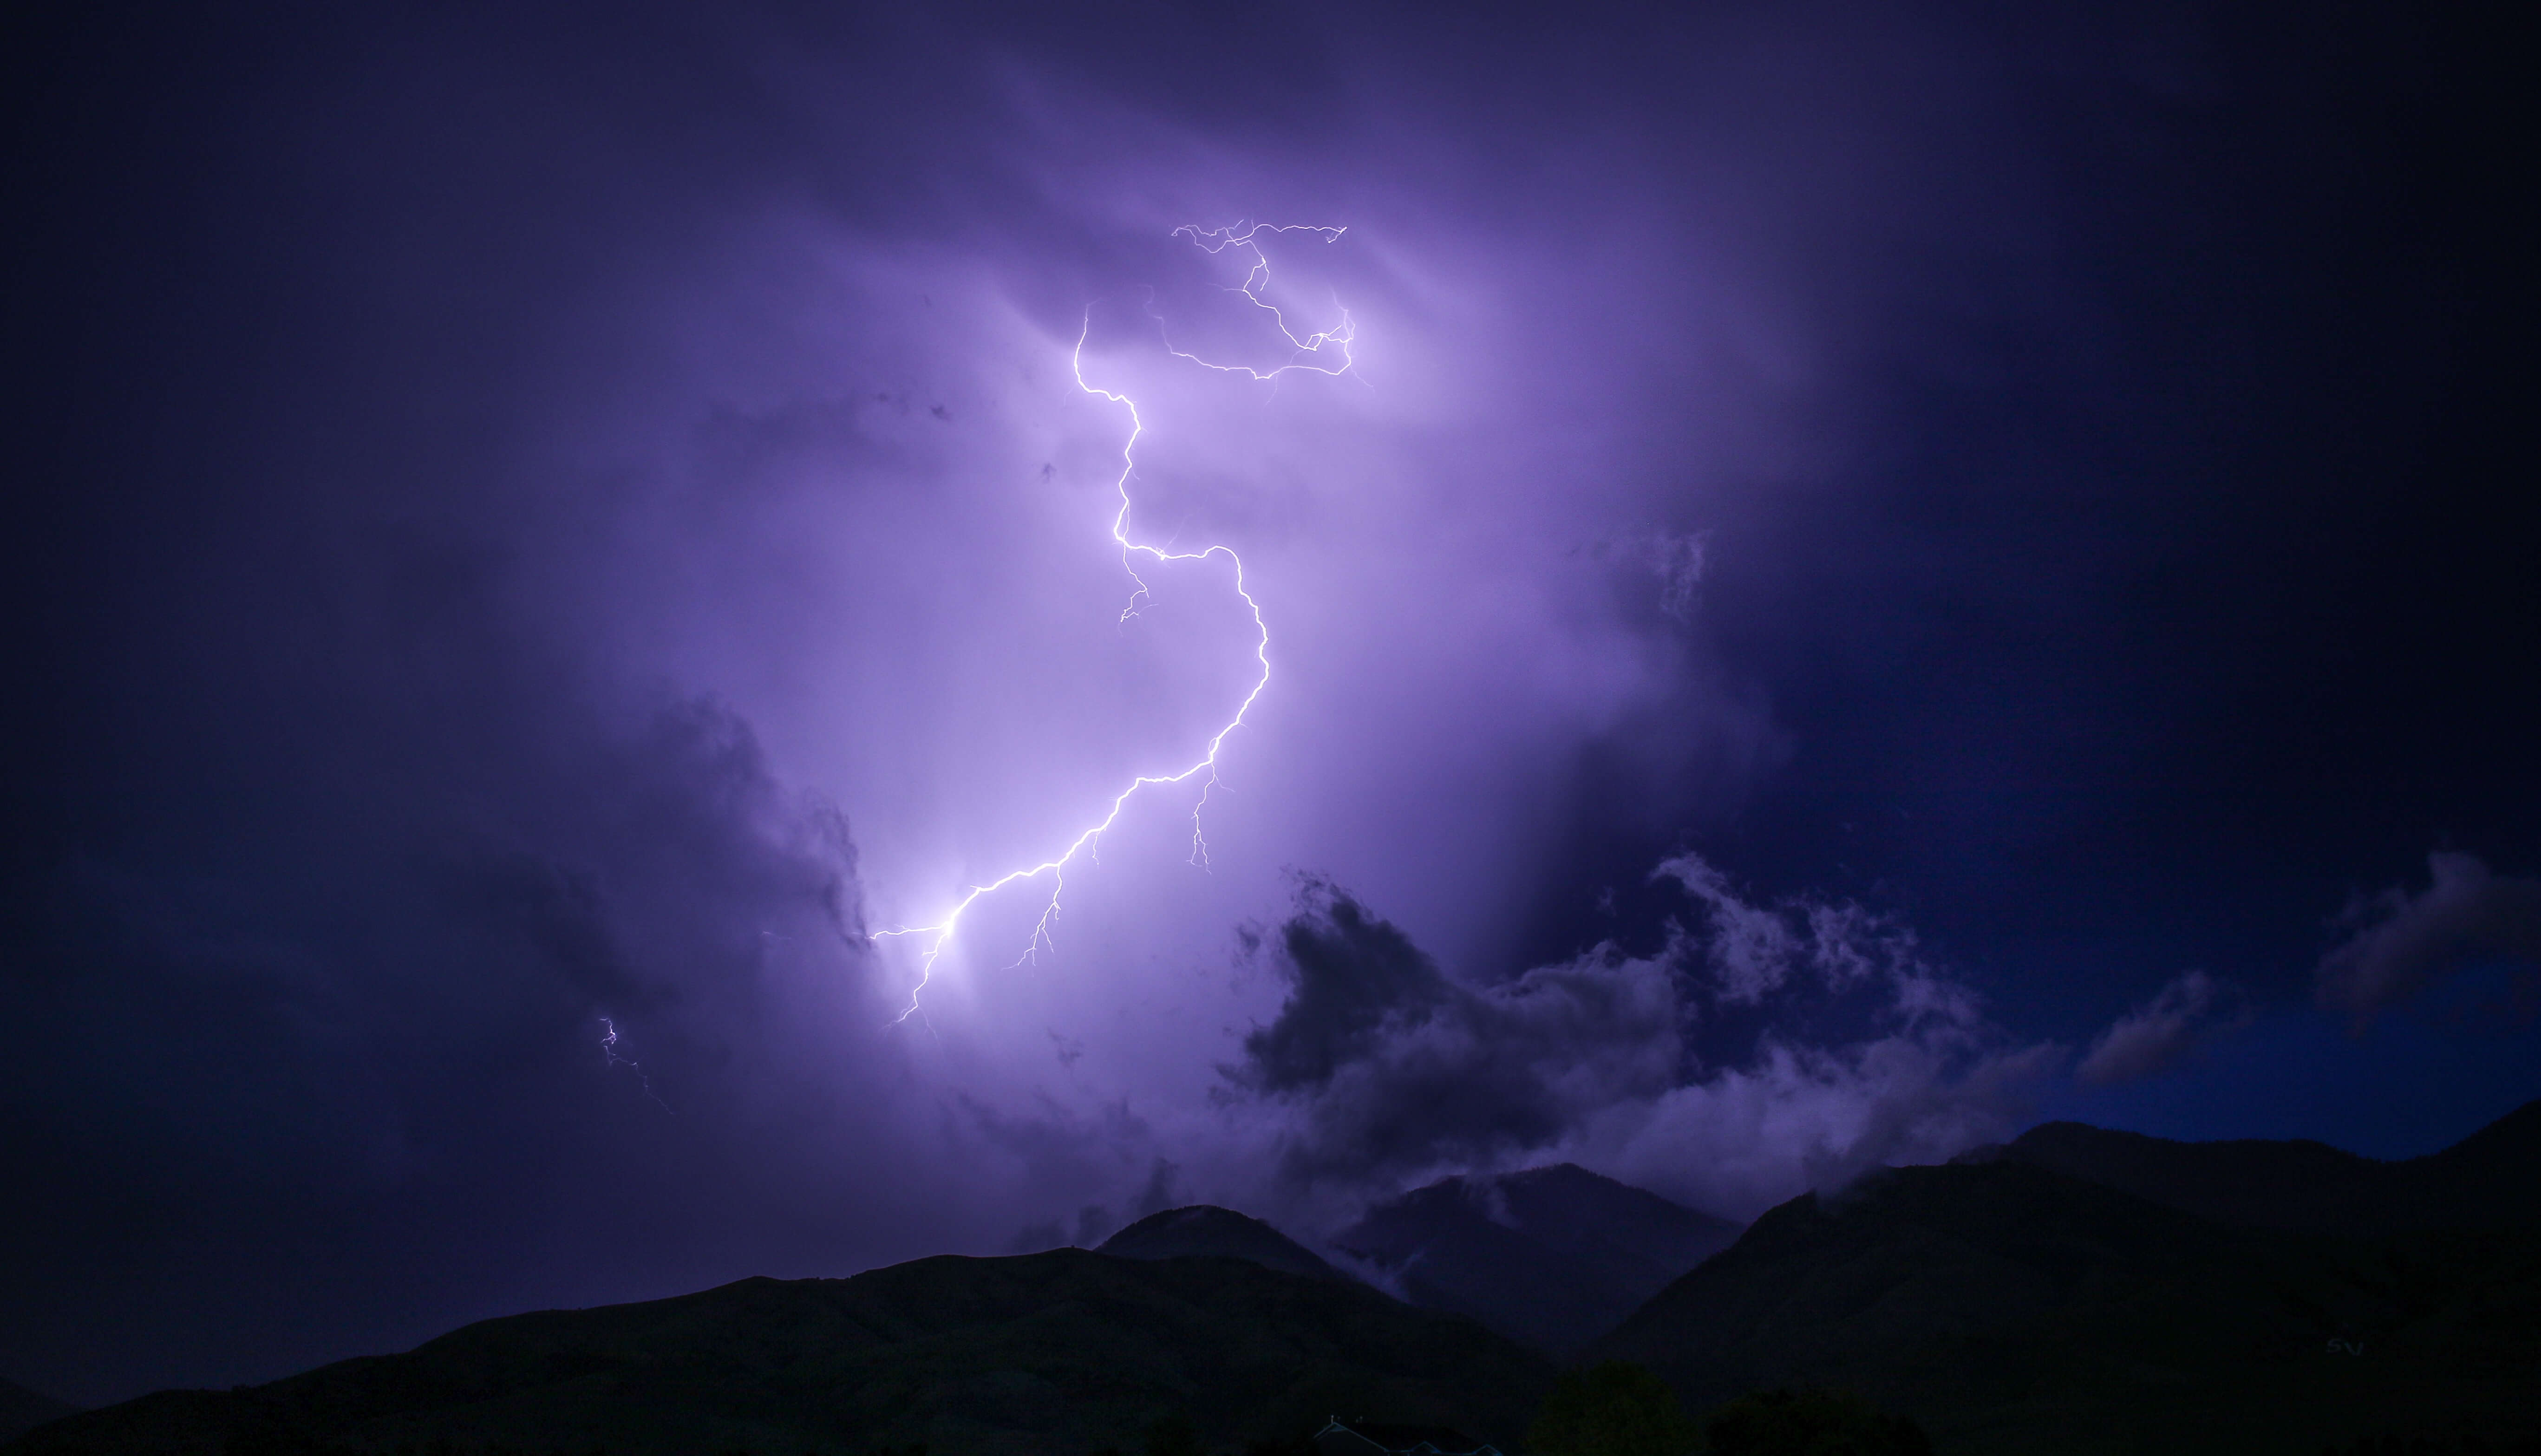 Lightning Strike in Dark Mountains